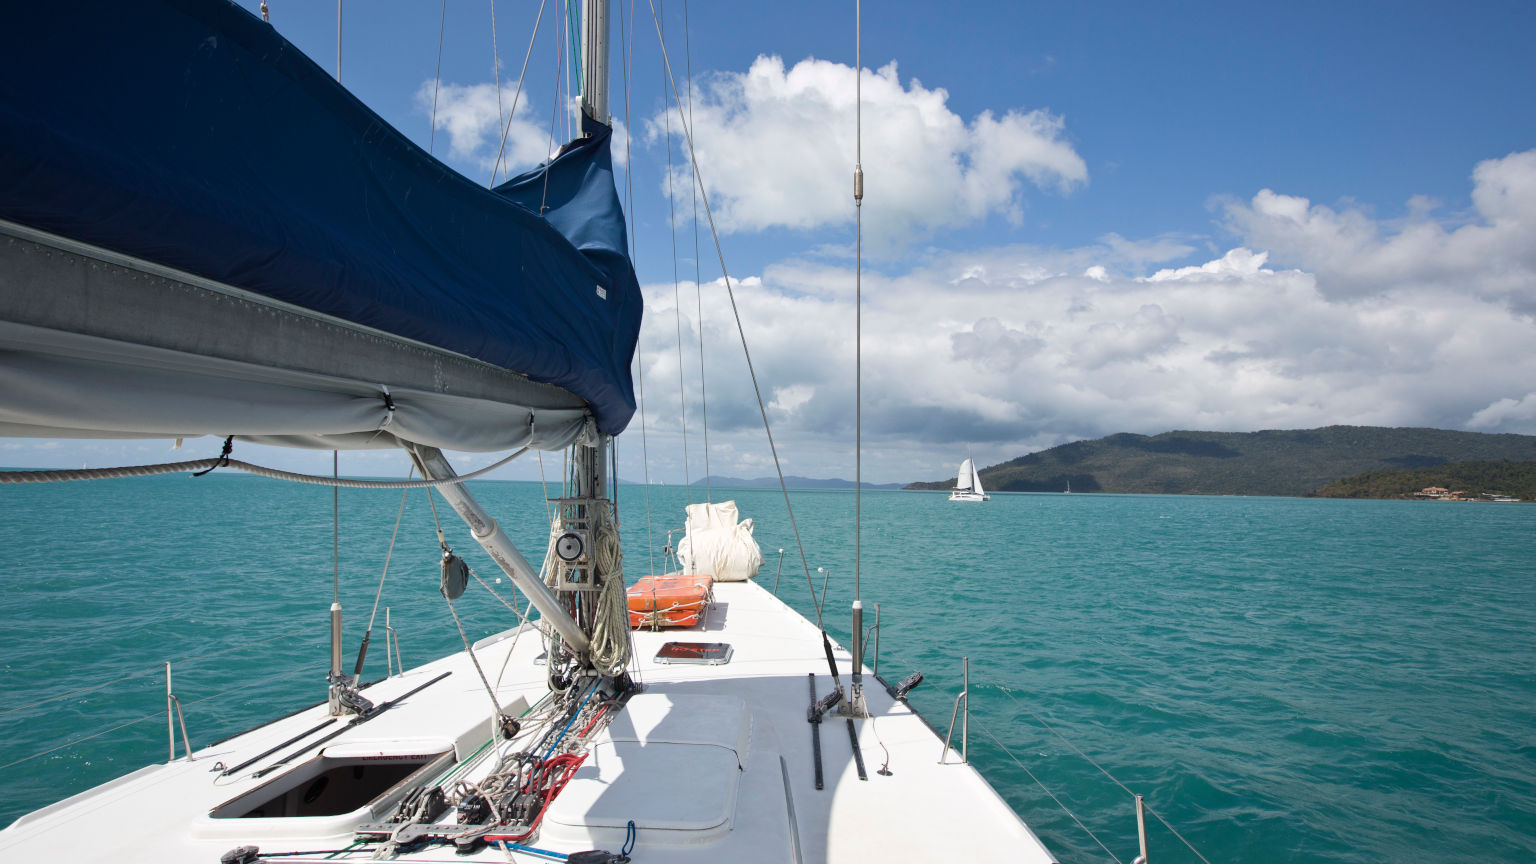 Australia-Whitsunday-Islands-Sailing-Landscape-Leo-Tamburri